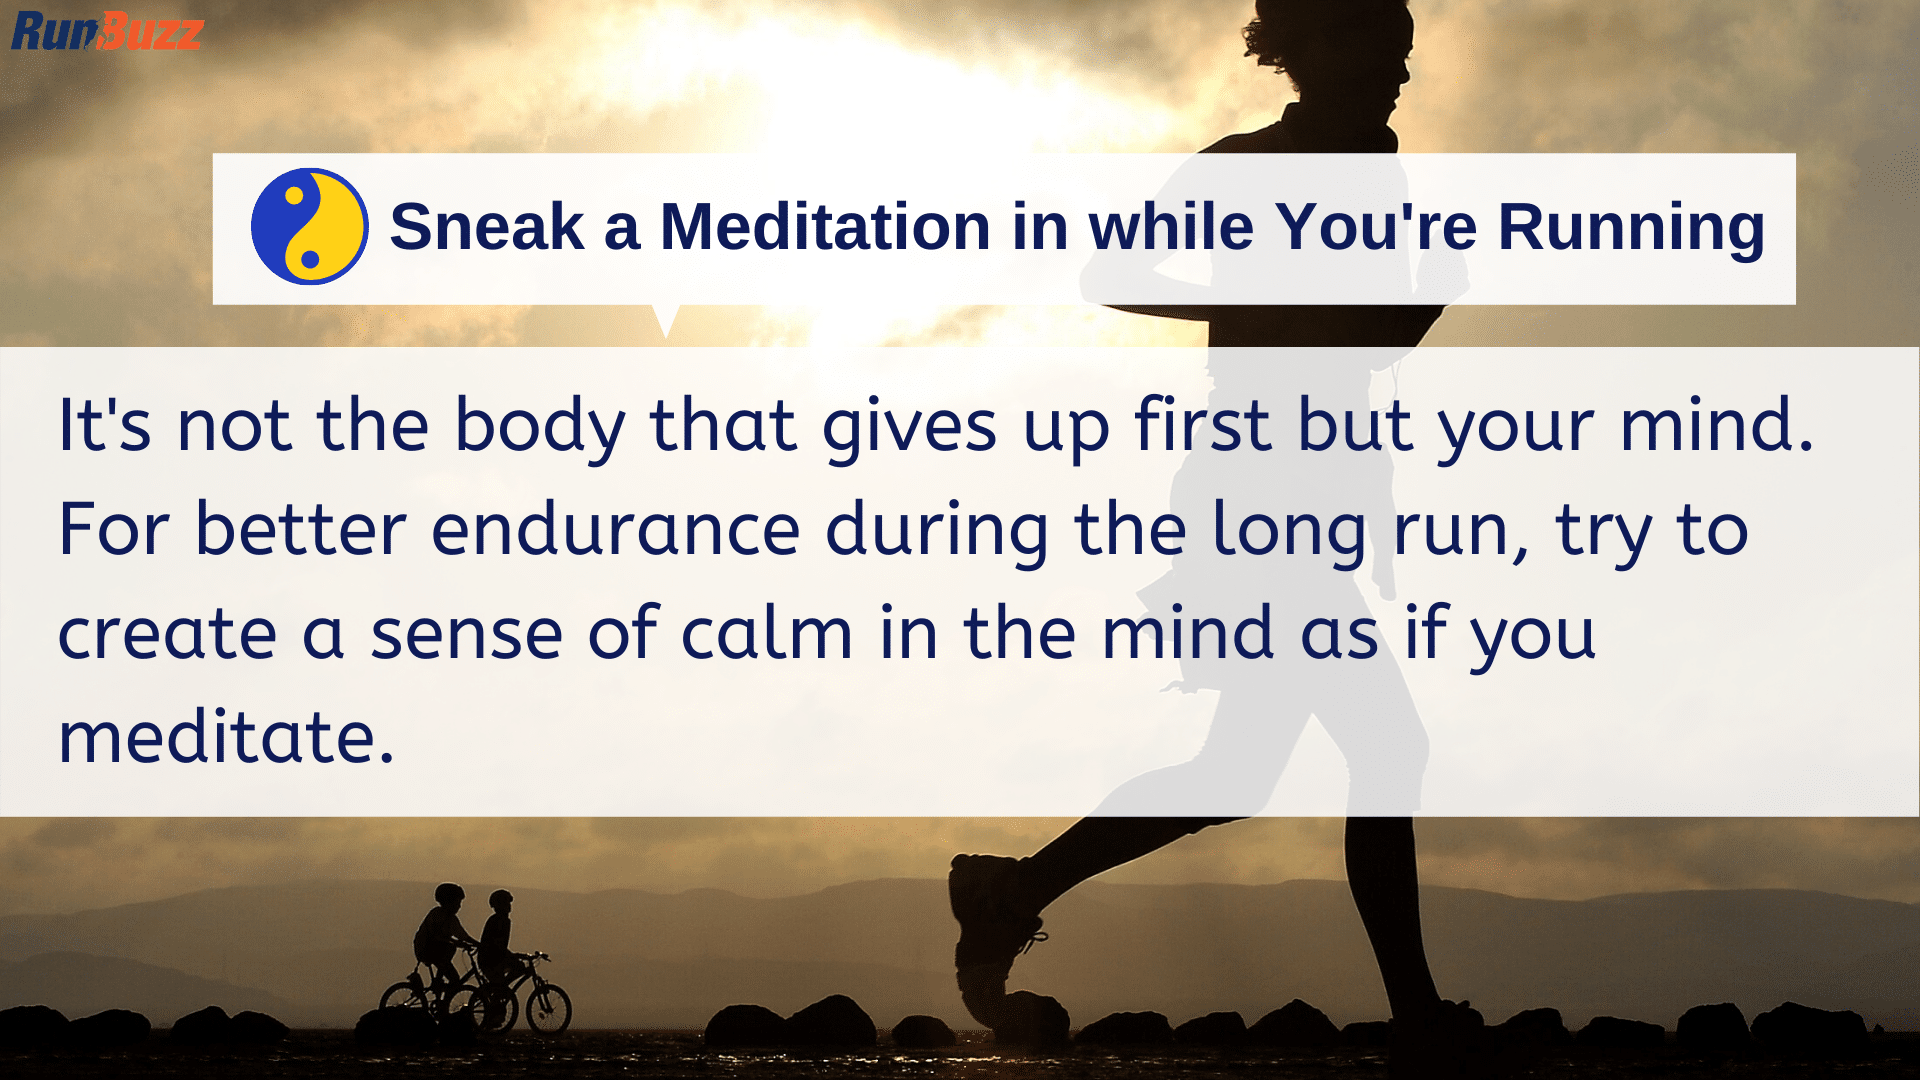 Sneak-a-Meditation-in-while-Youre-Running